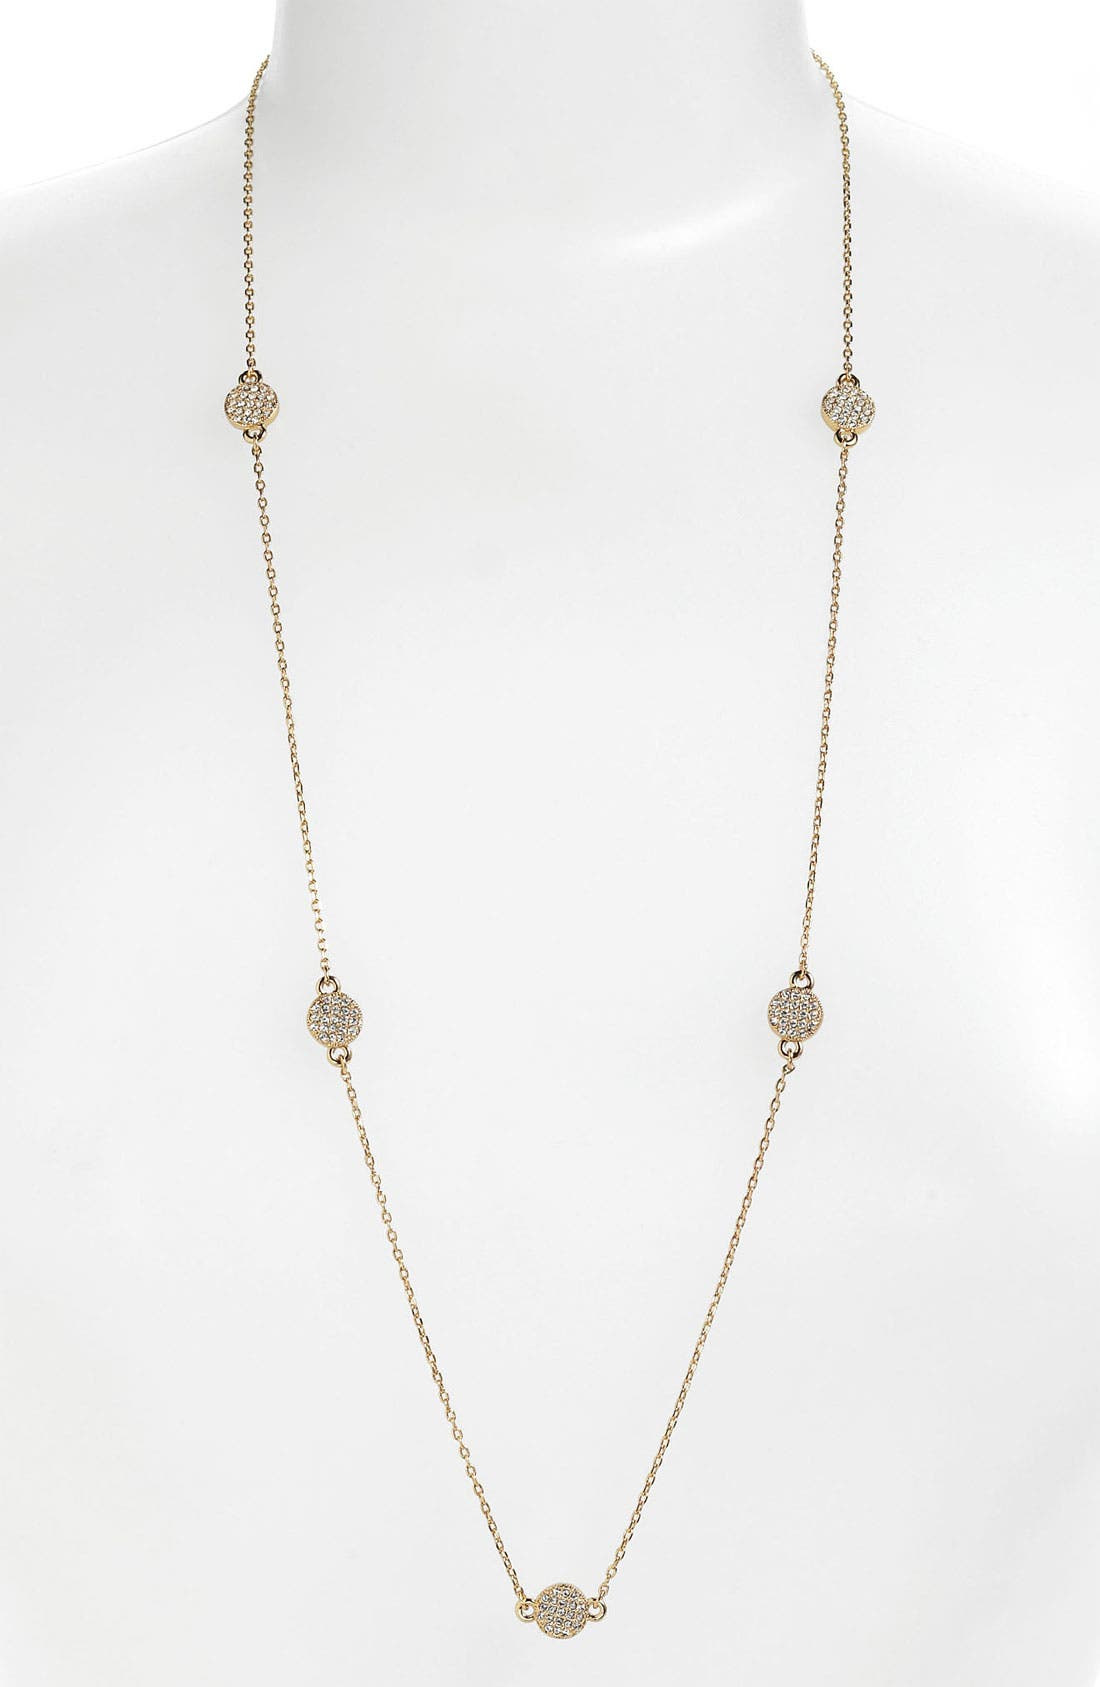 Main Image - kate spade new york 'bright spot' long station necklace